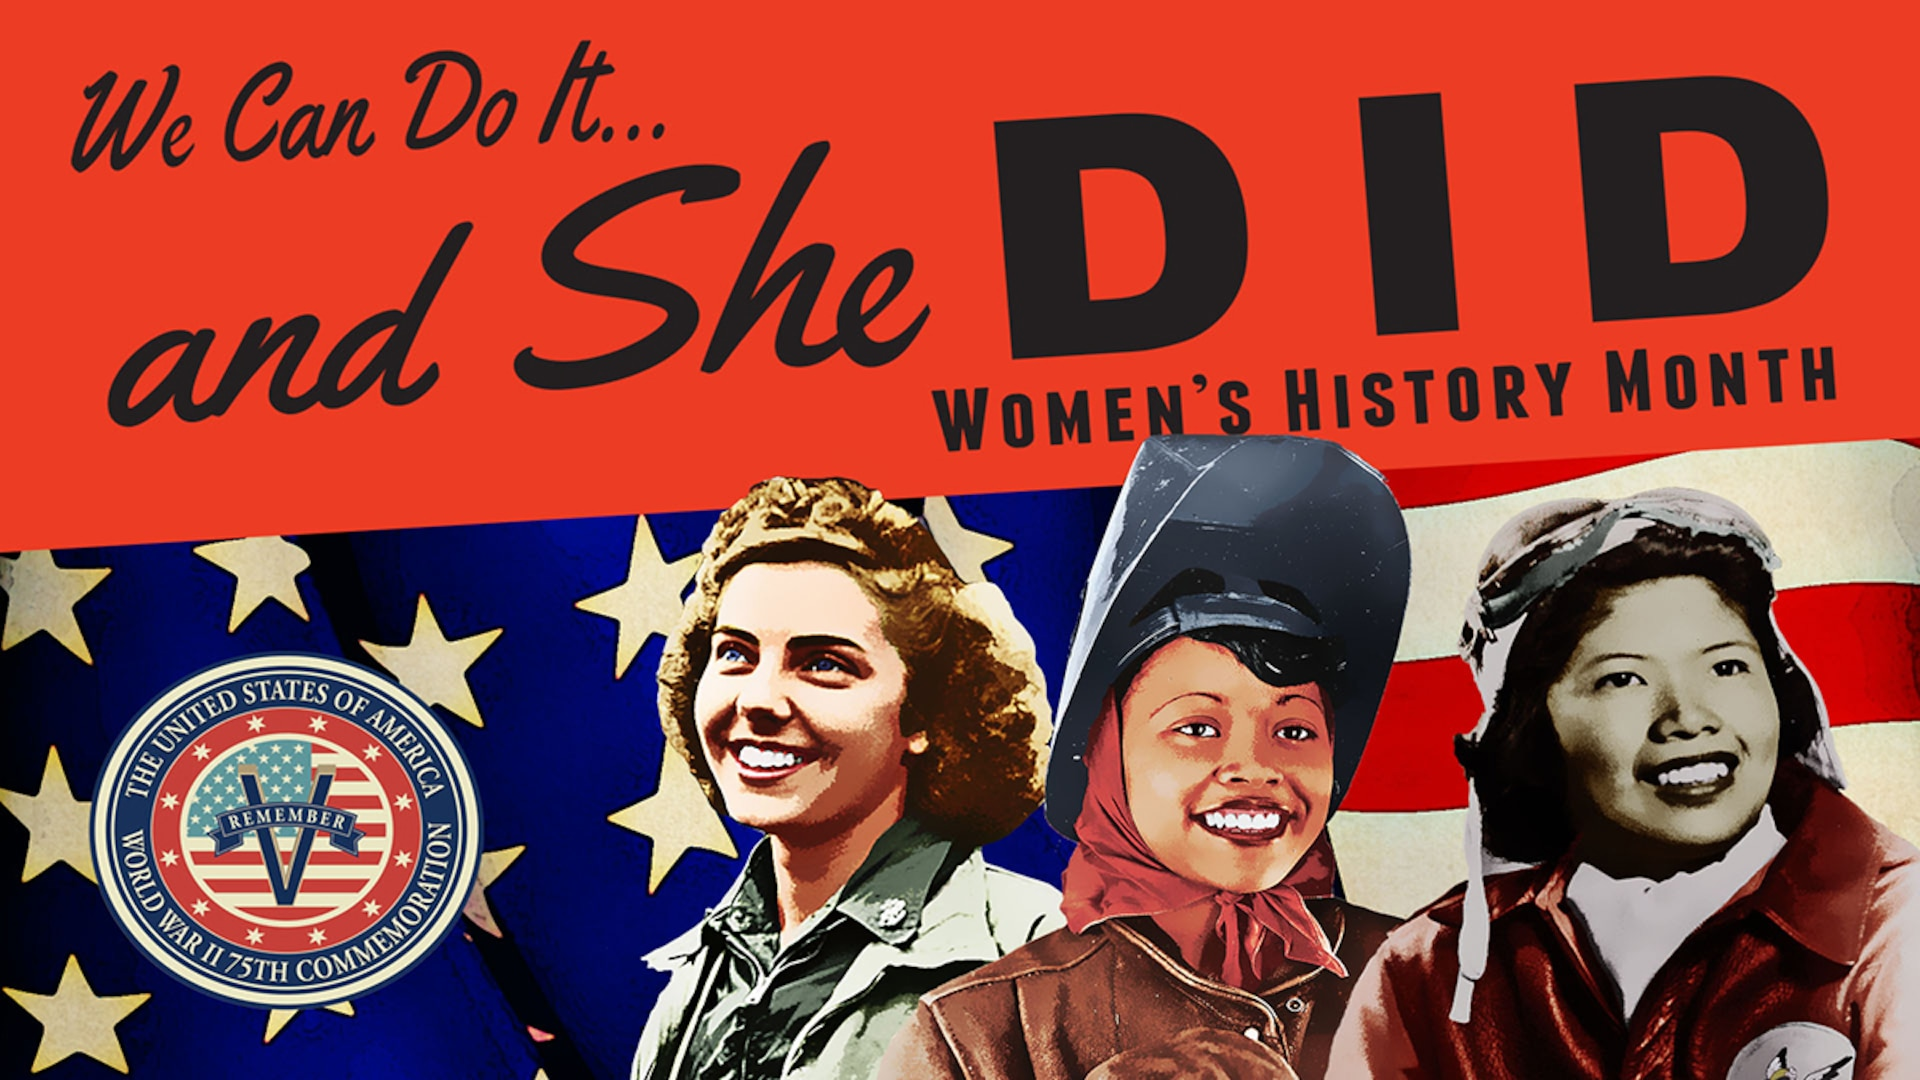 A banner graphic for Women's History Month